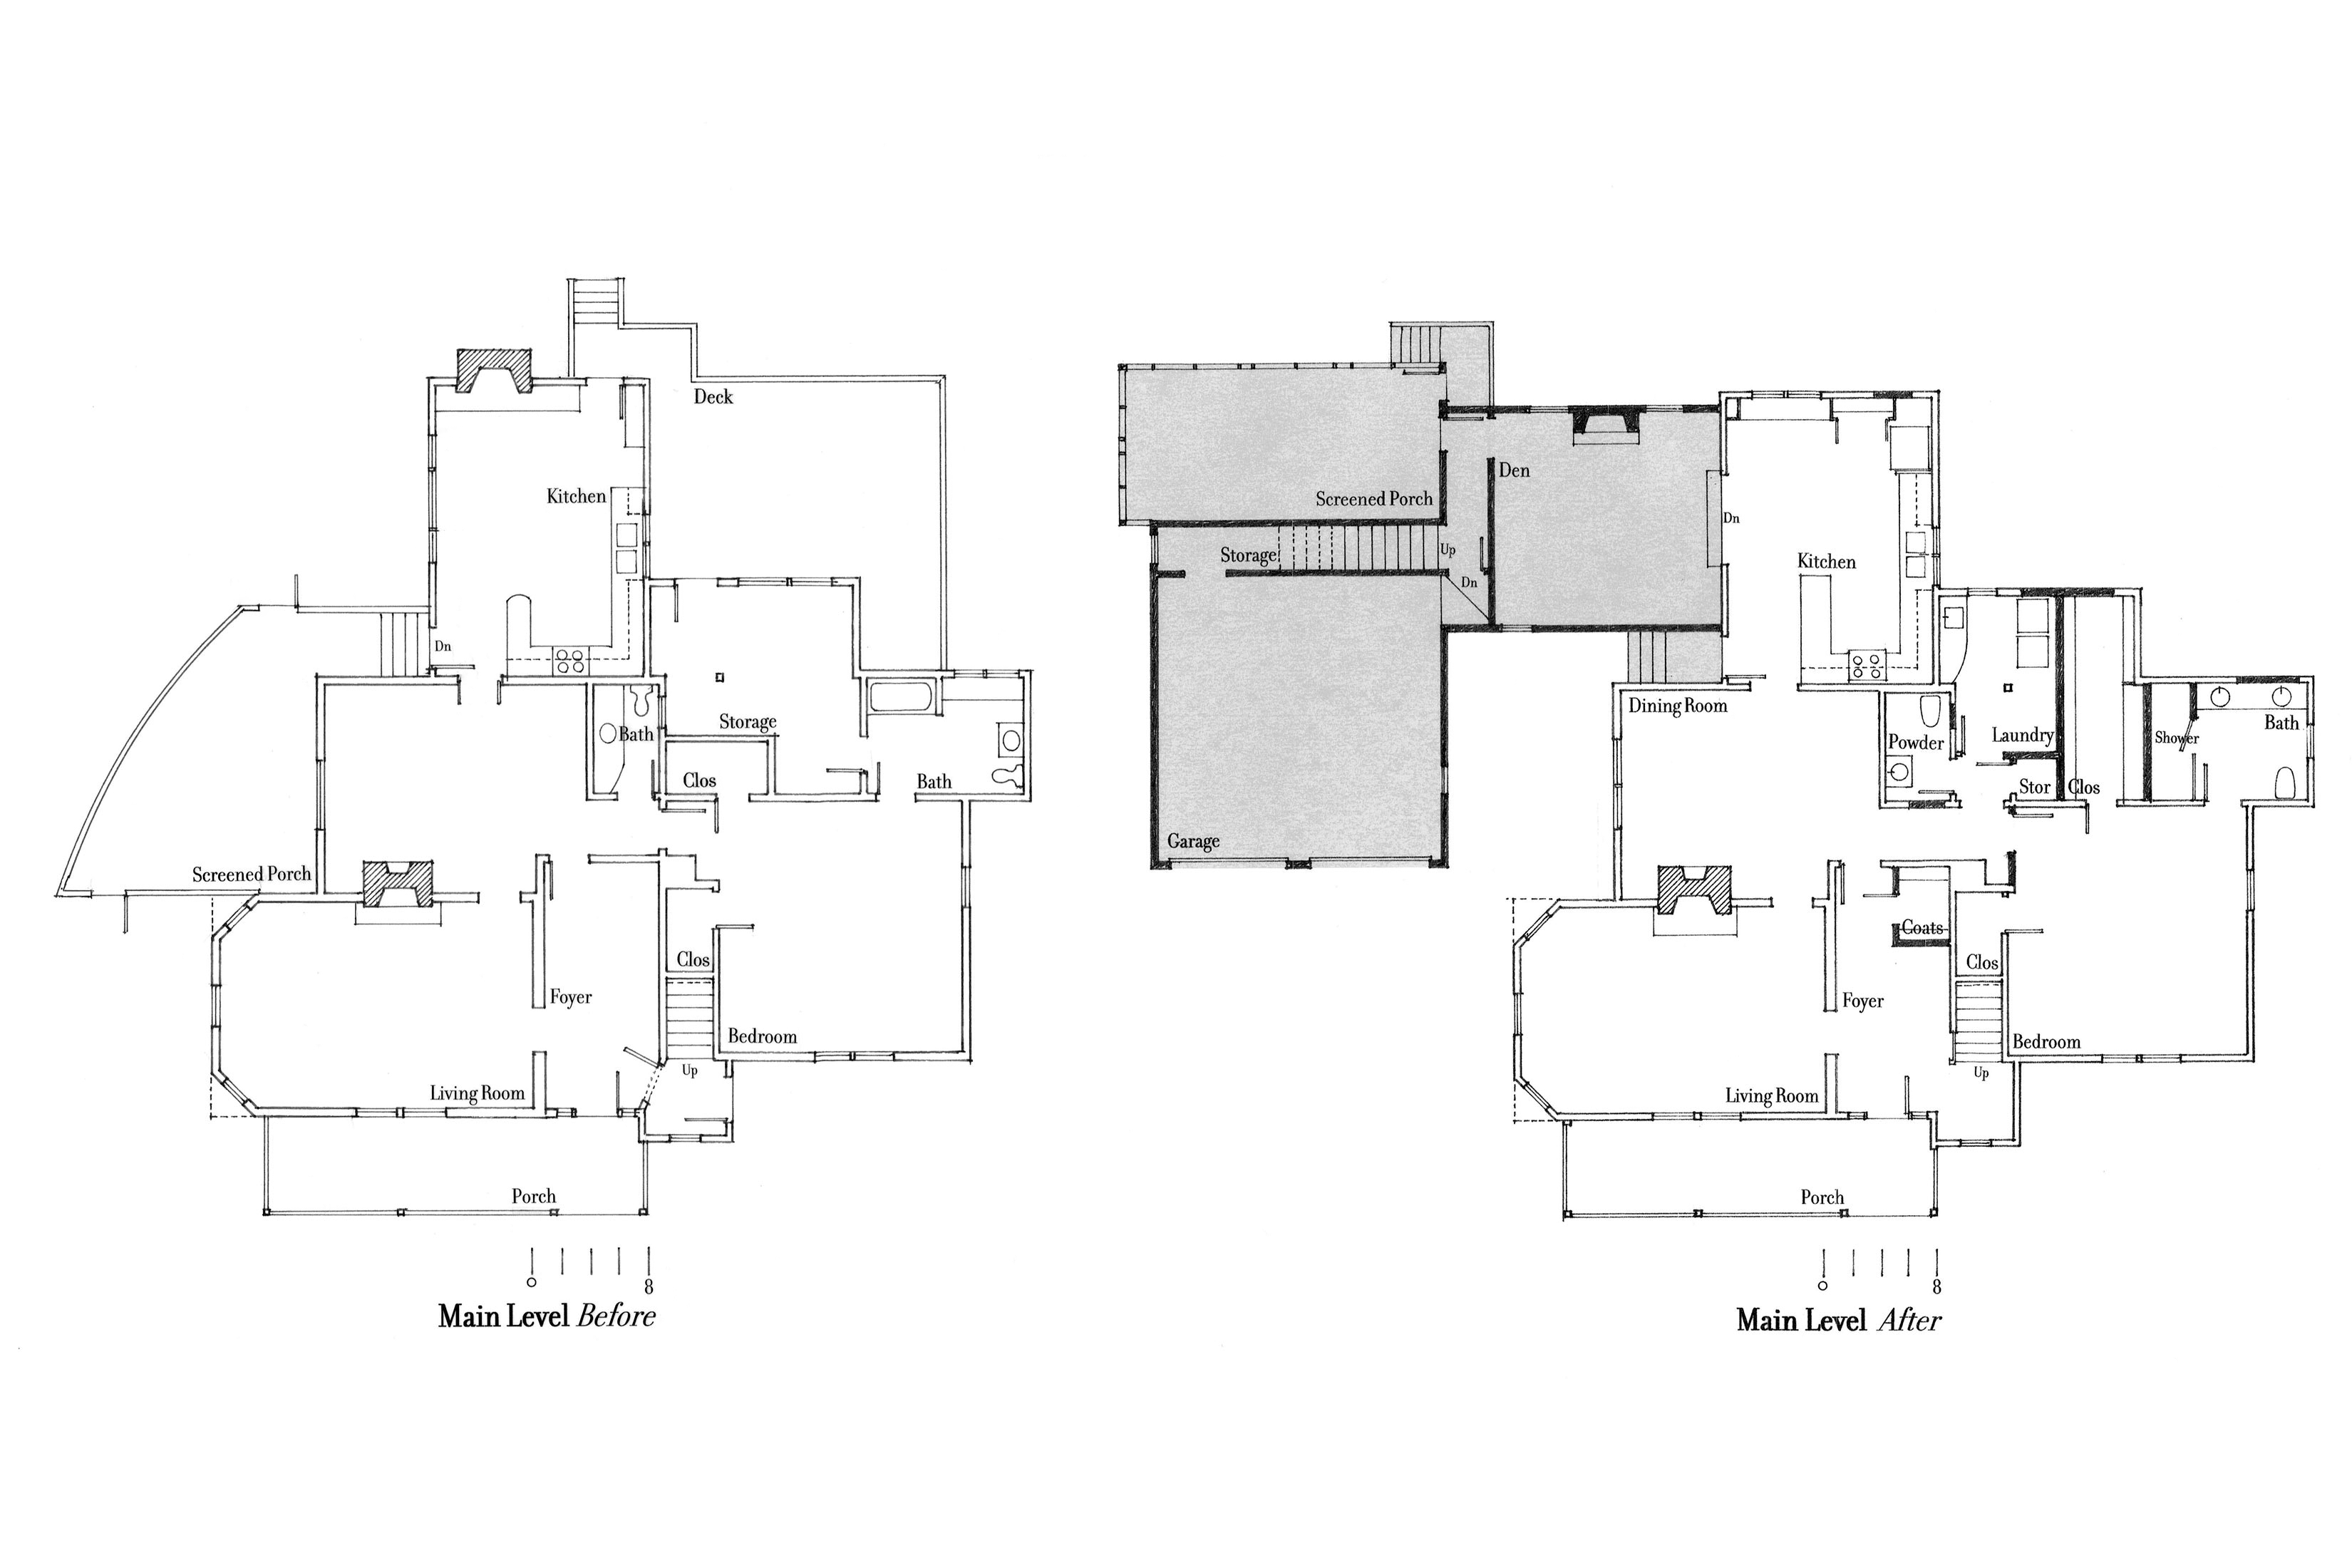 Floor plan showing the before and after layouts.